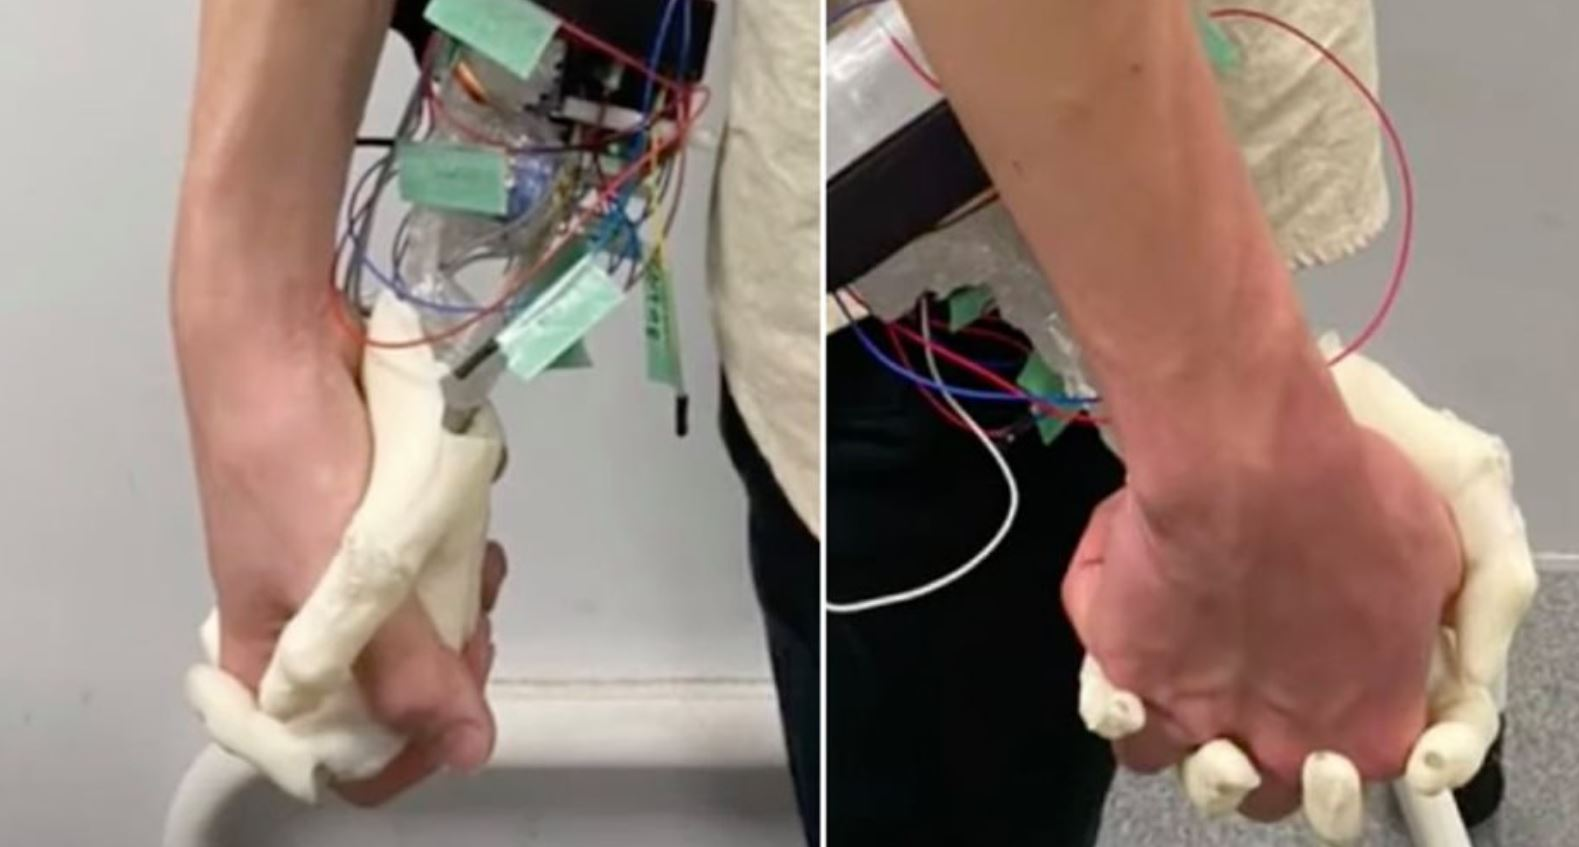 Japanese scientists create robotic girlfriend hand for 'lonely people'